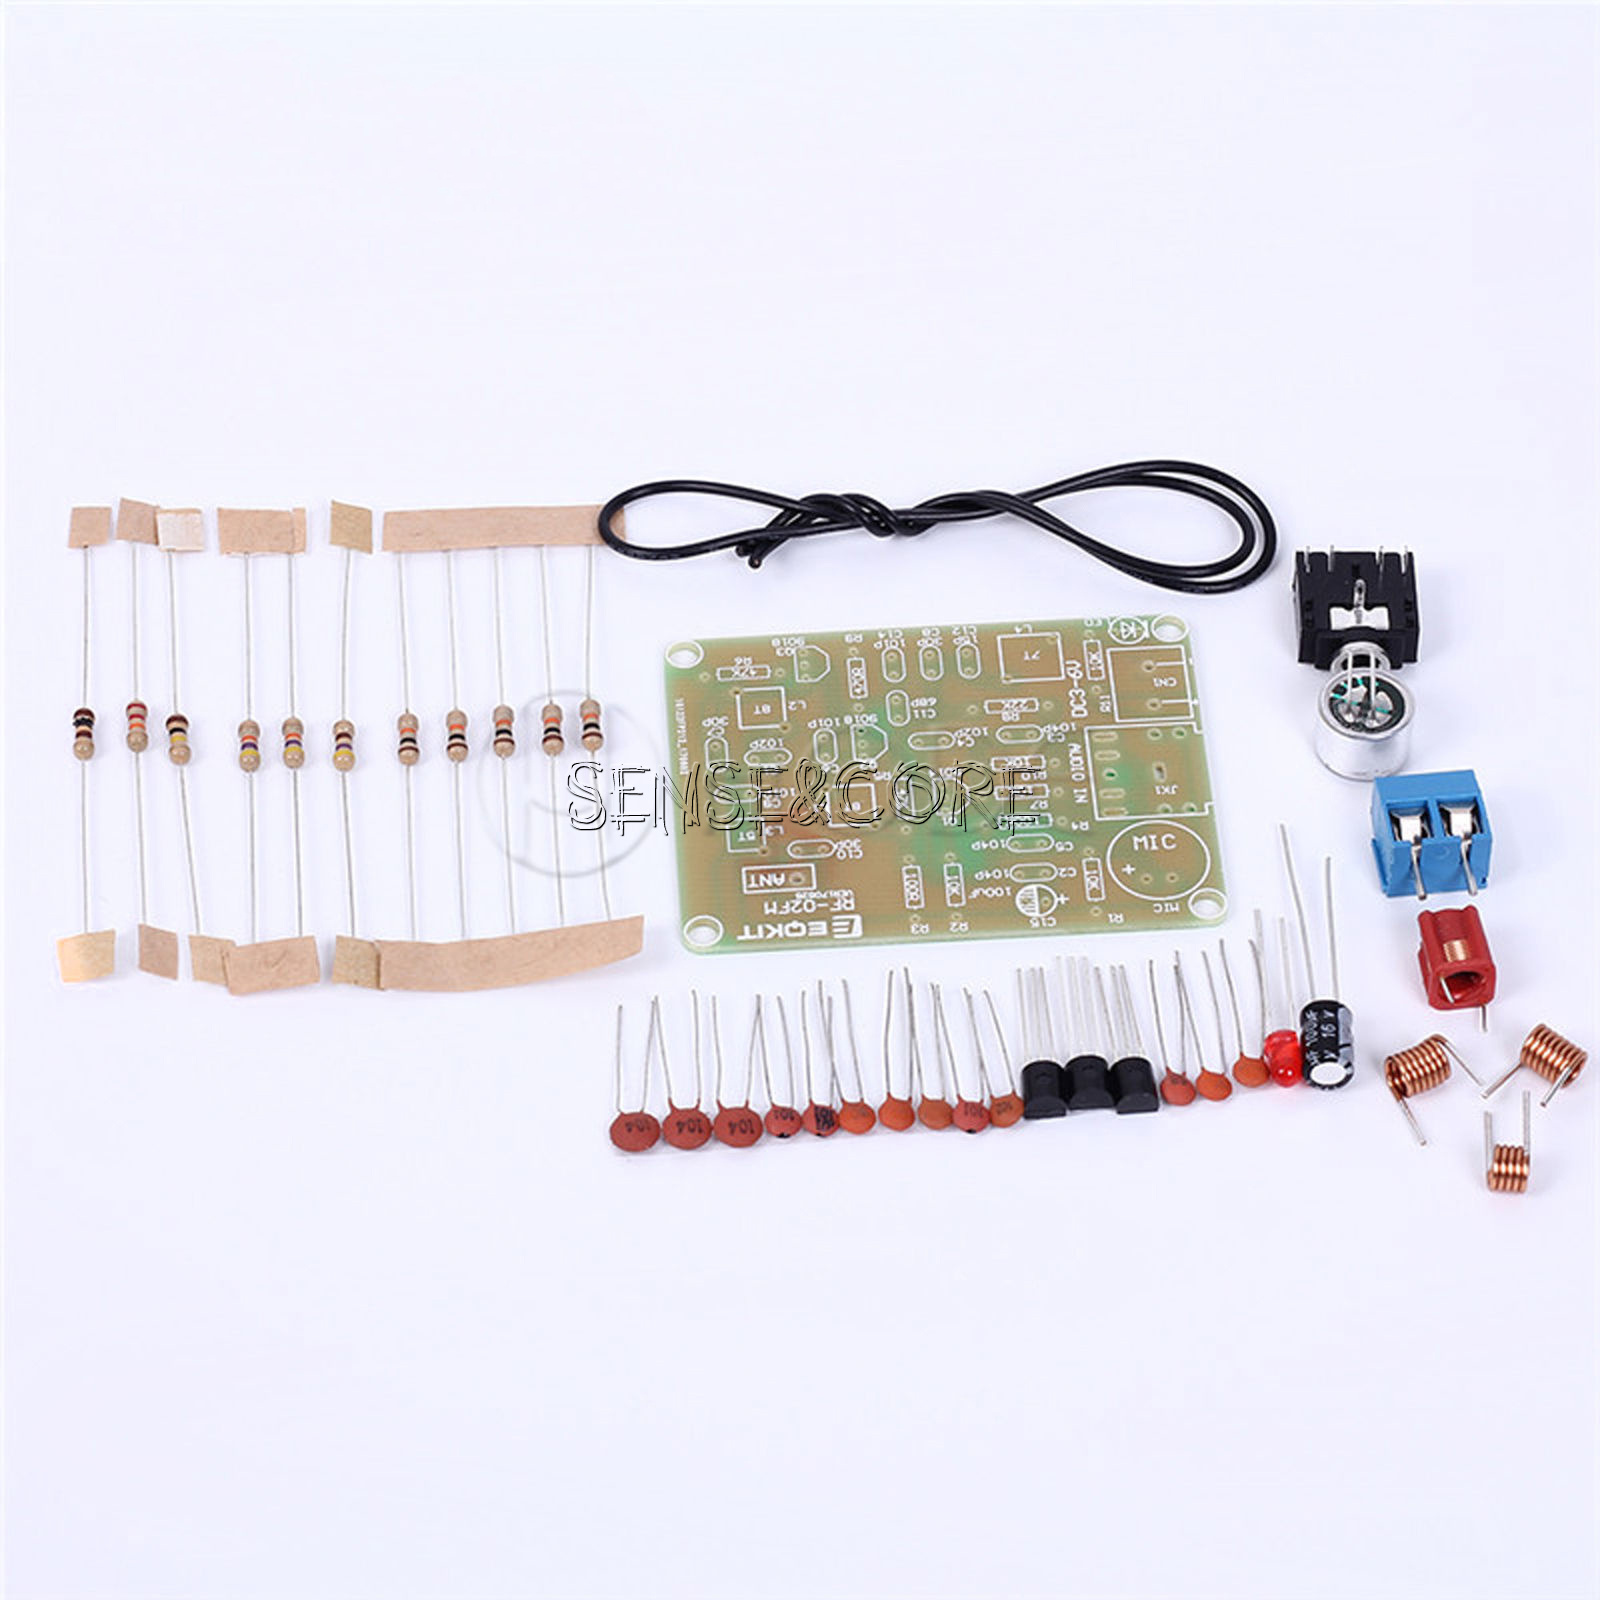 Fm Wireless Microphone Suite Radio Transmitter Diy 15 9v 88 Bh1415f Stereo Pll Power Amplifier The 108mhz Module